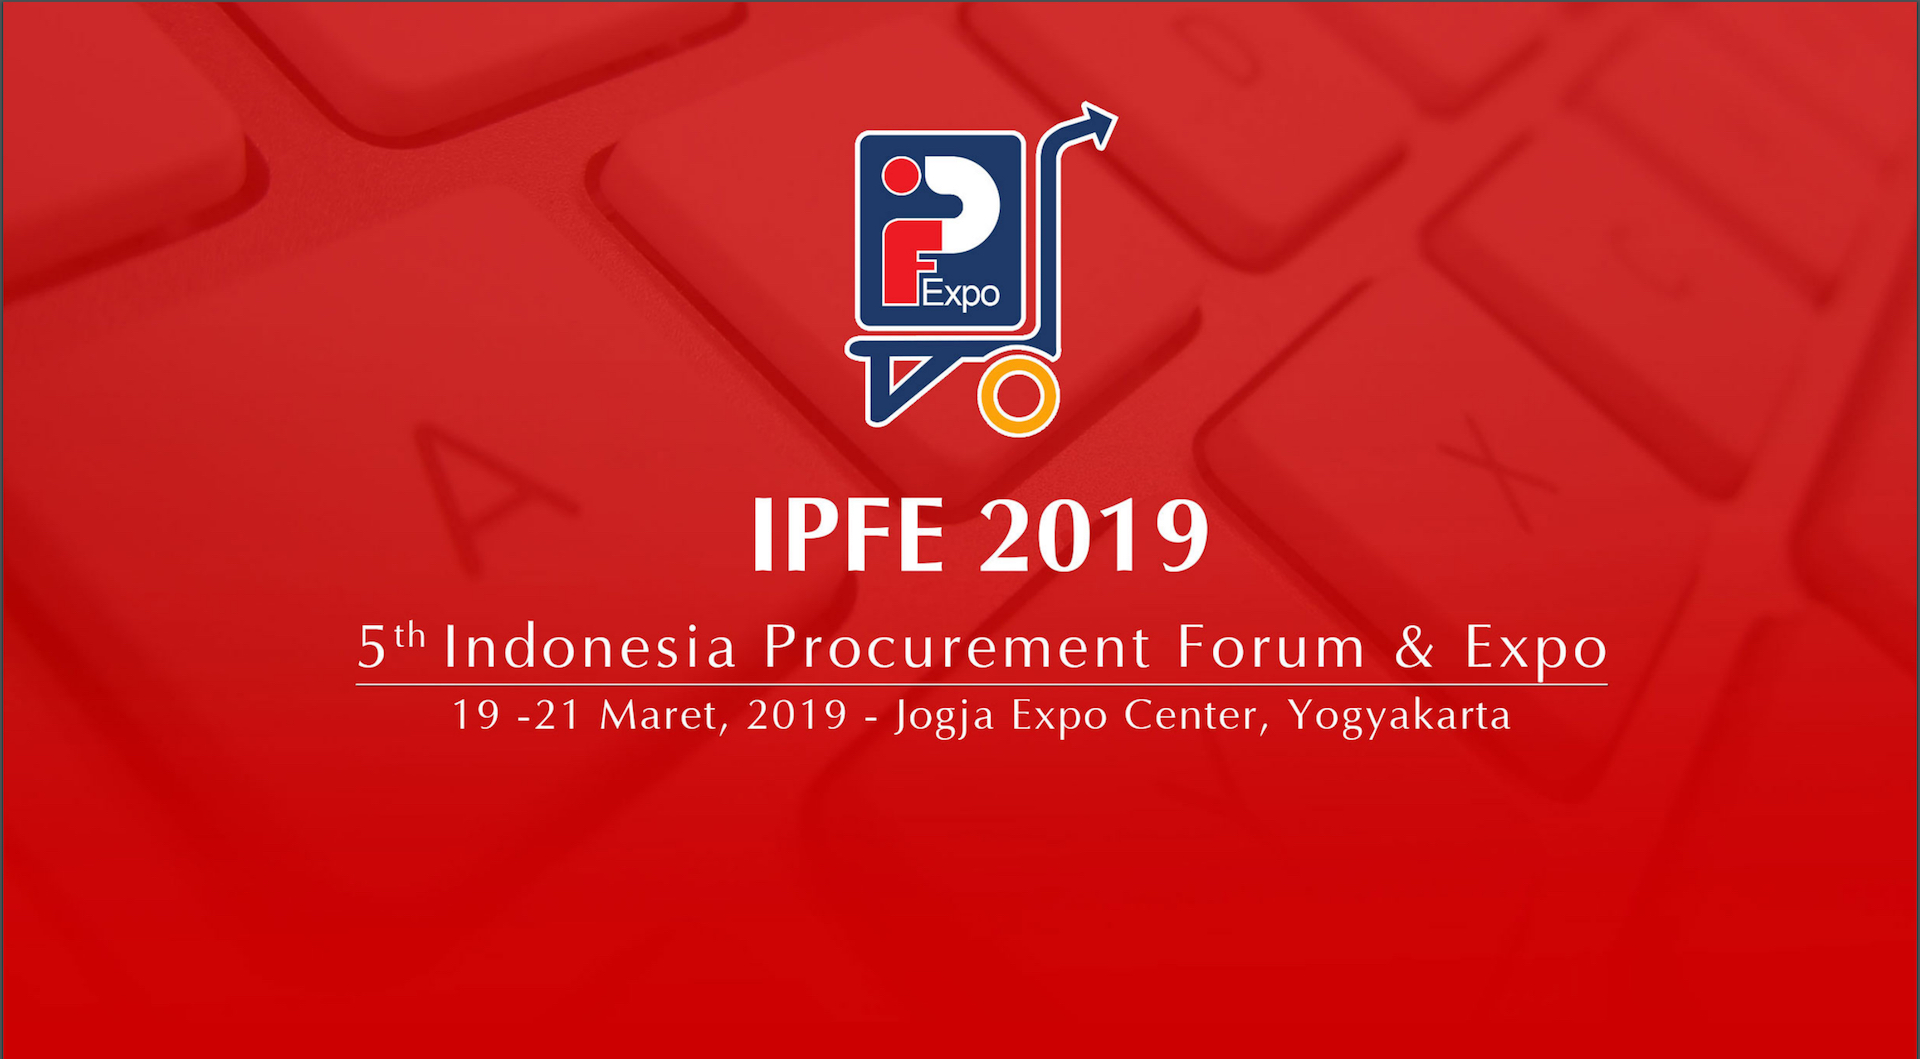 5th INDONESIA PROCUREMENT FORUM EXPO ( IPFE 2019 )